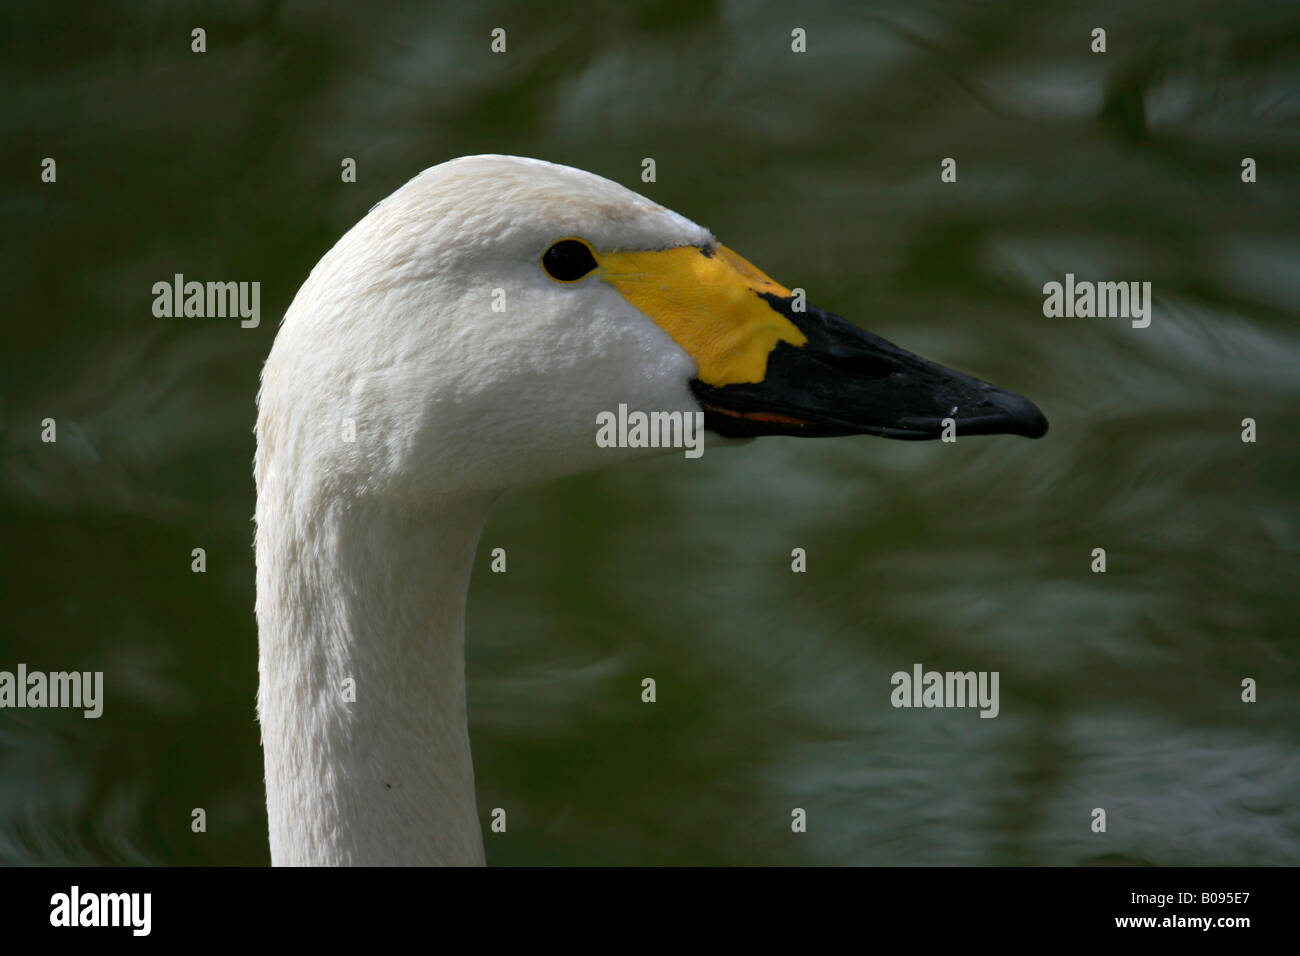 Tundra Swan (Cygnus columbianus bewickii) Stock Photo